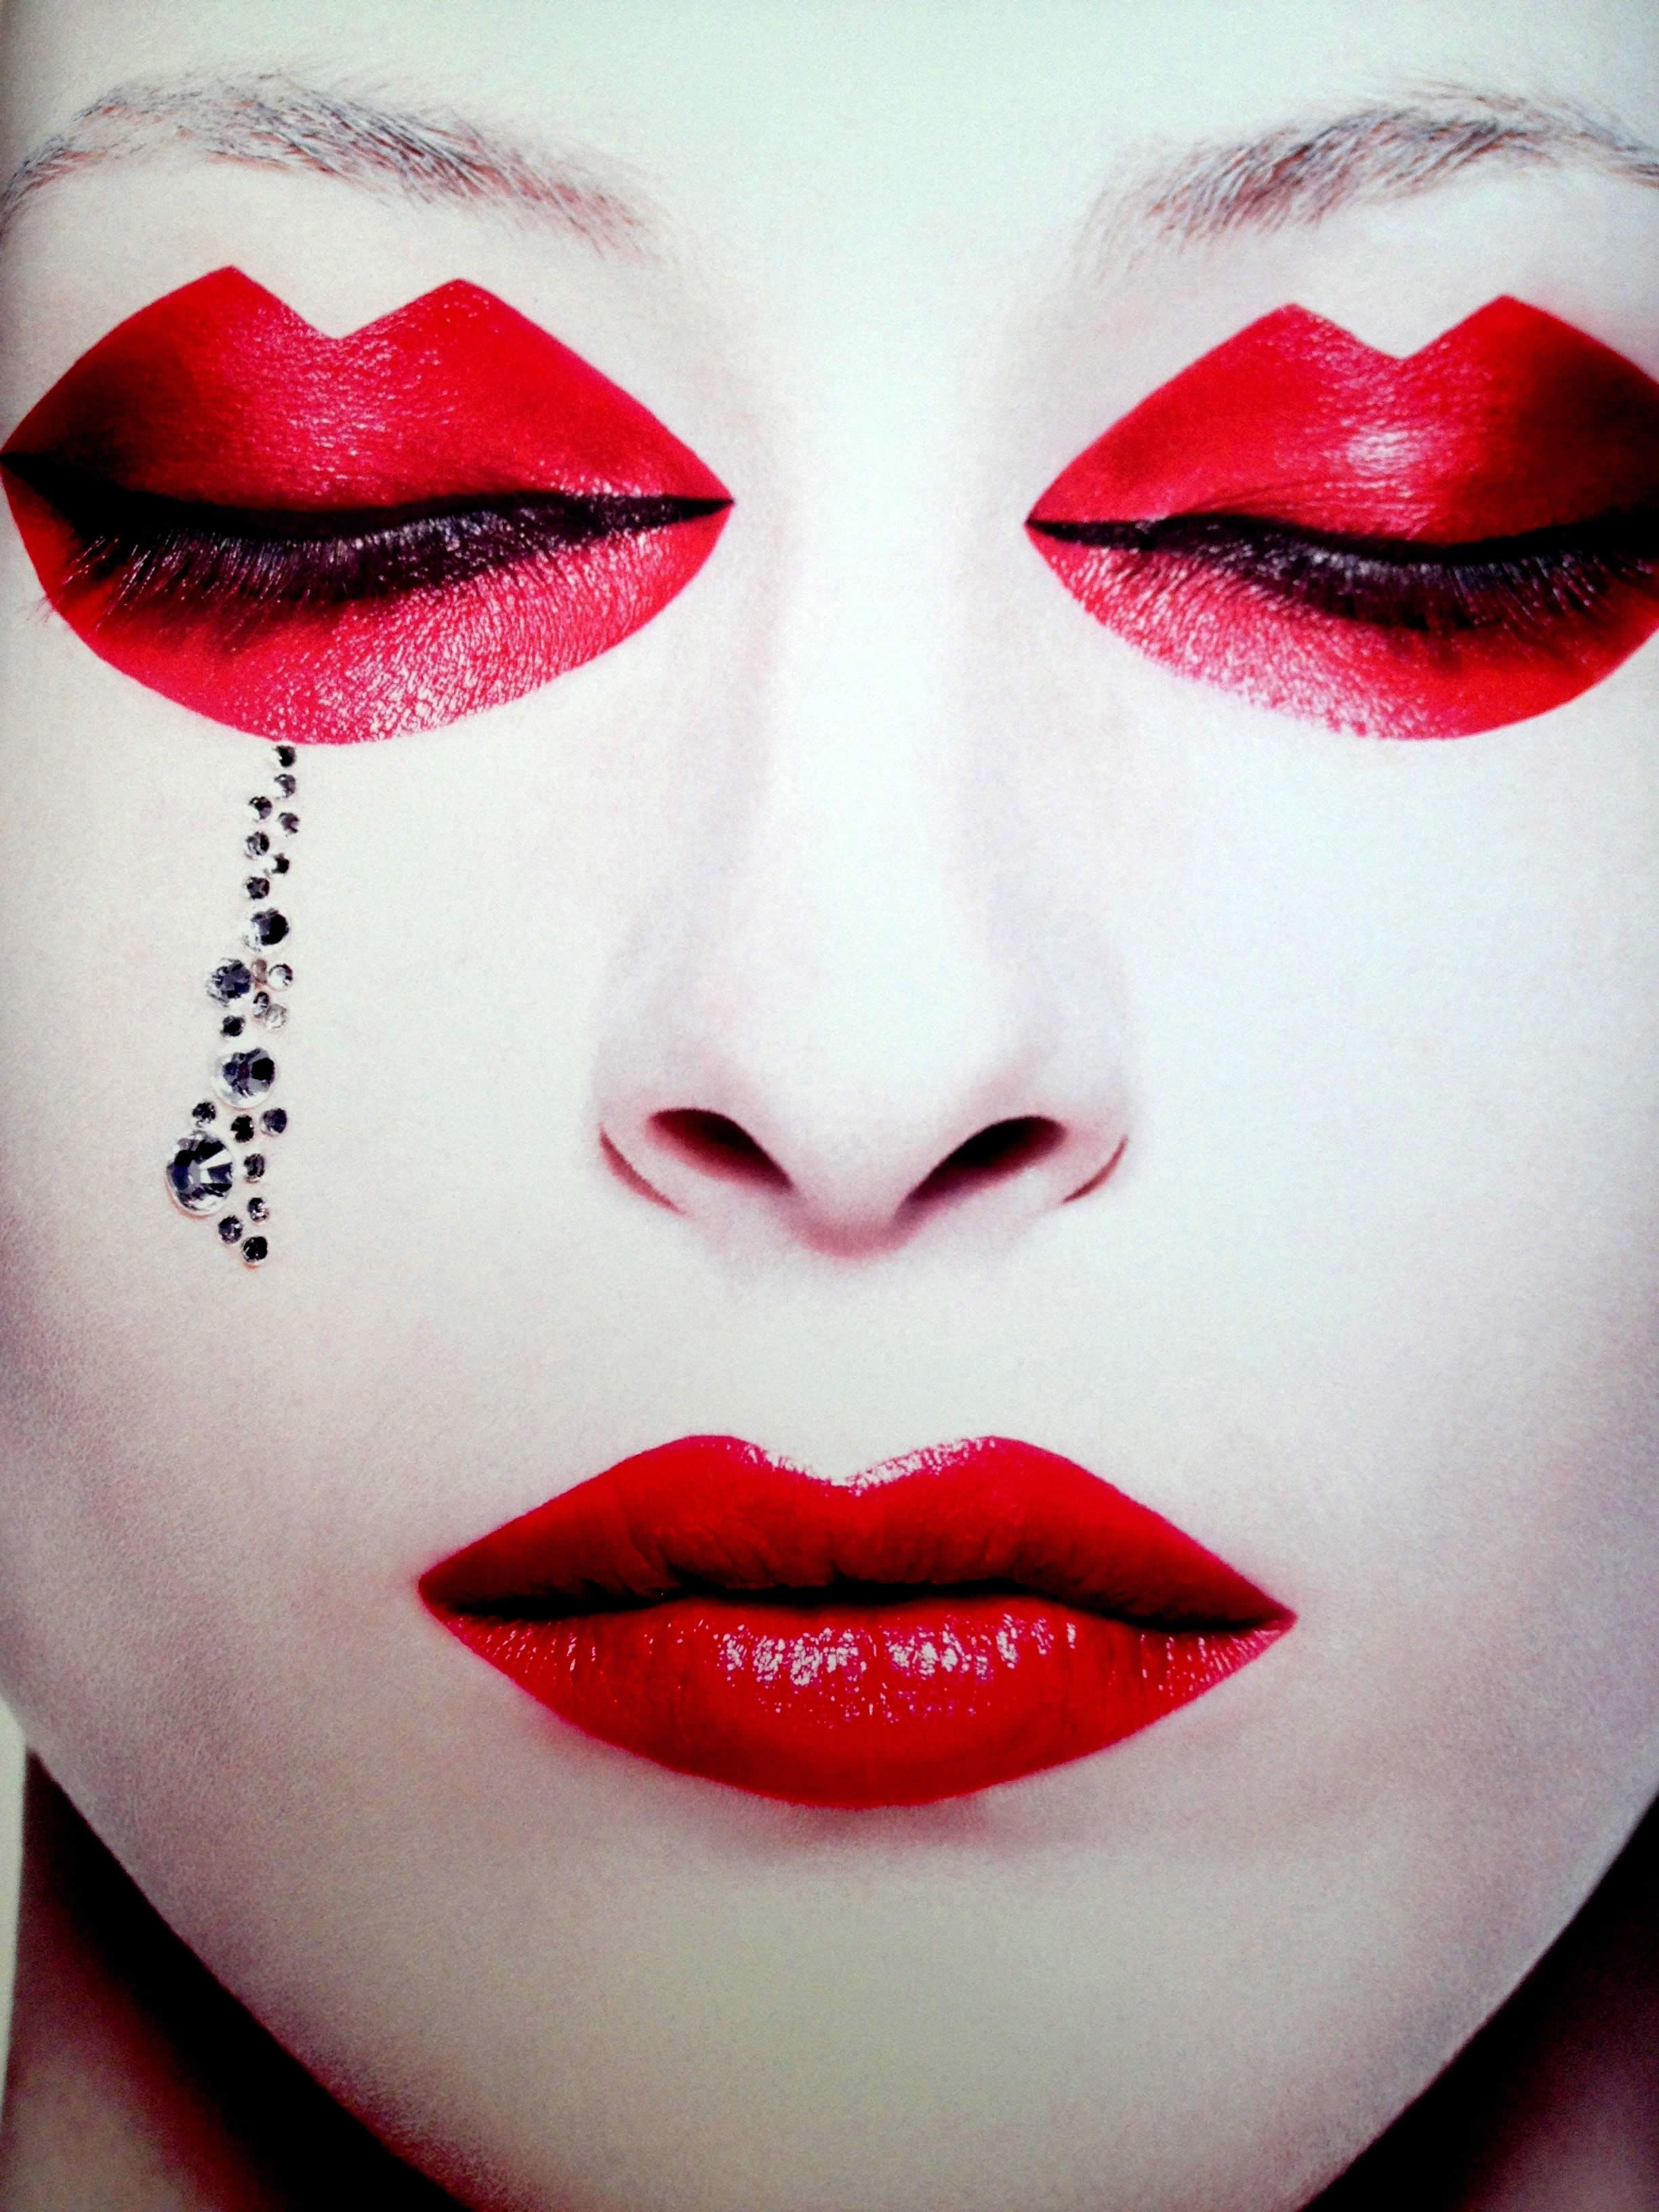 Eccentric Makeup And Photography By Rankin Makeup Photography Rankin Photography Makeup Art